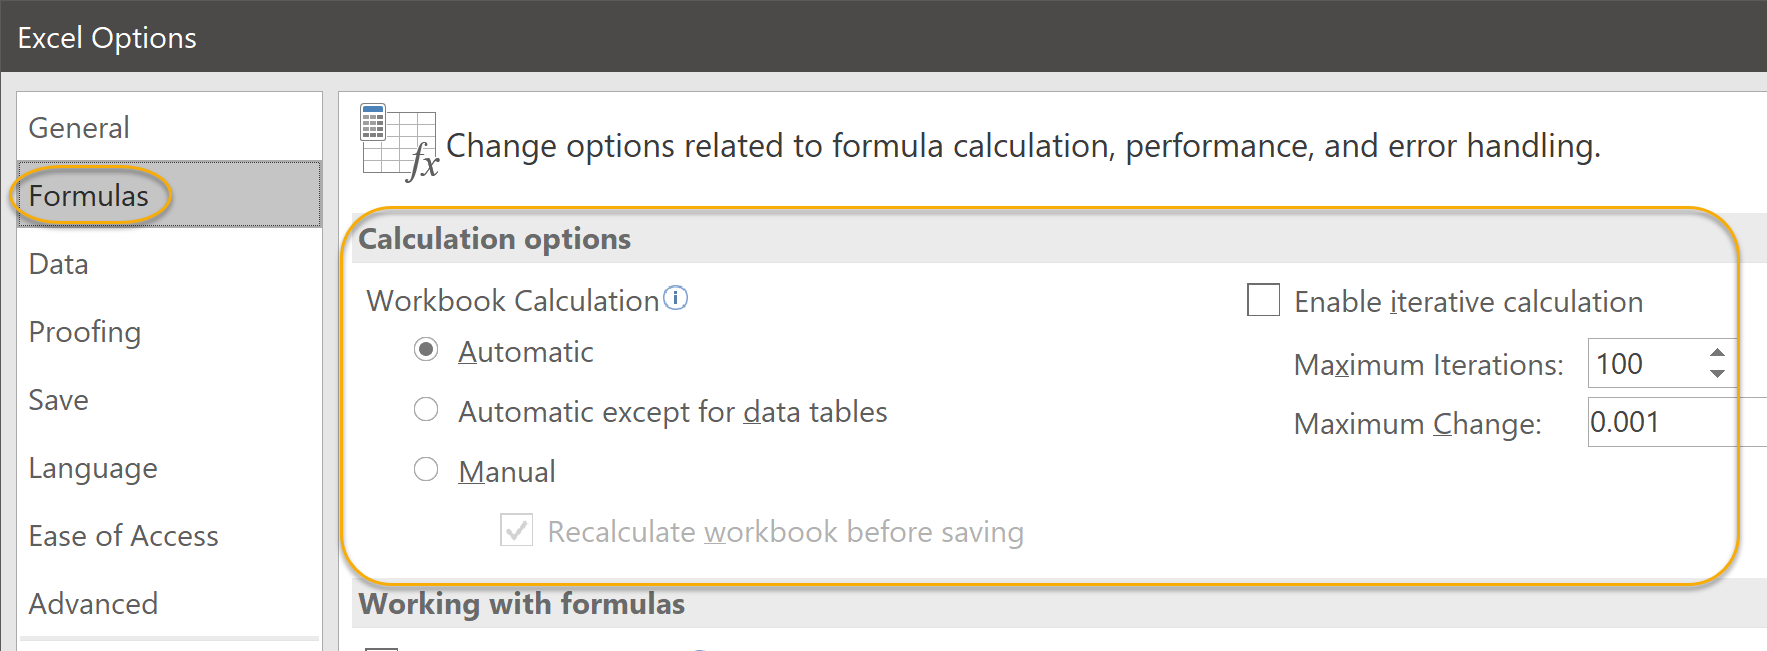 Formulas Options